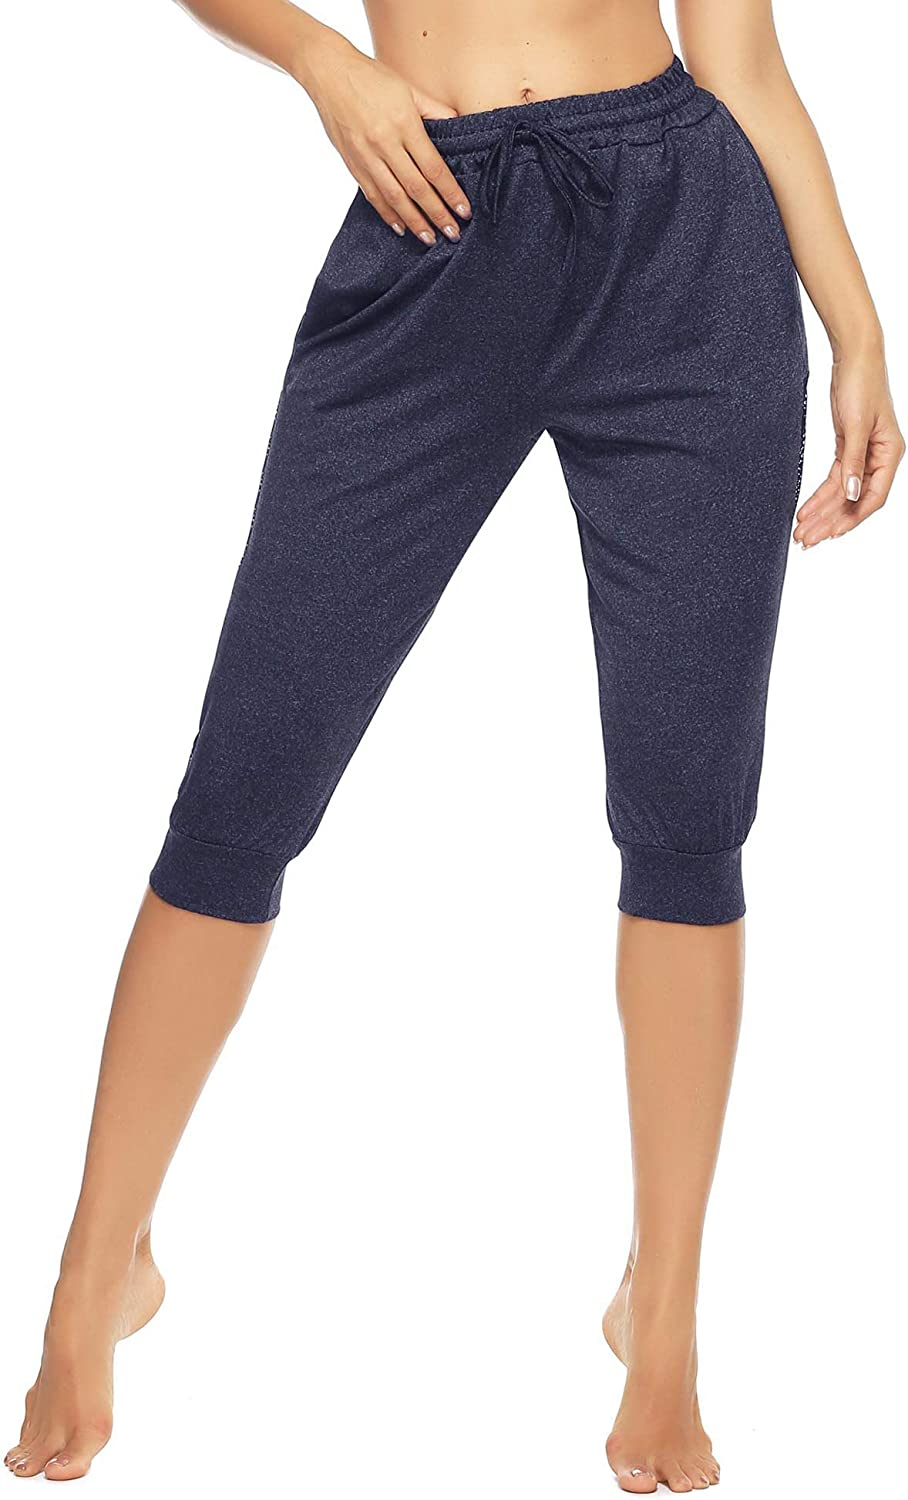 Doaraha Womens Capri Pants Sweatpants Cropped Casual Drawstring Sports Trousers Side Stripe 3//4 Length Jogging Bottoms for Running Gym Fitness Outdoor